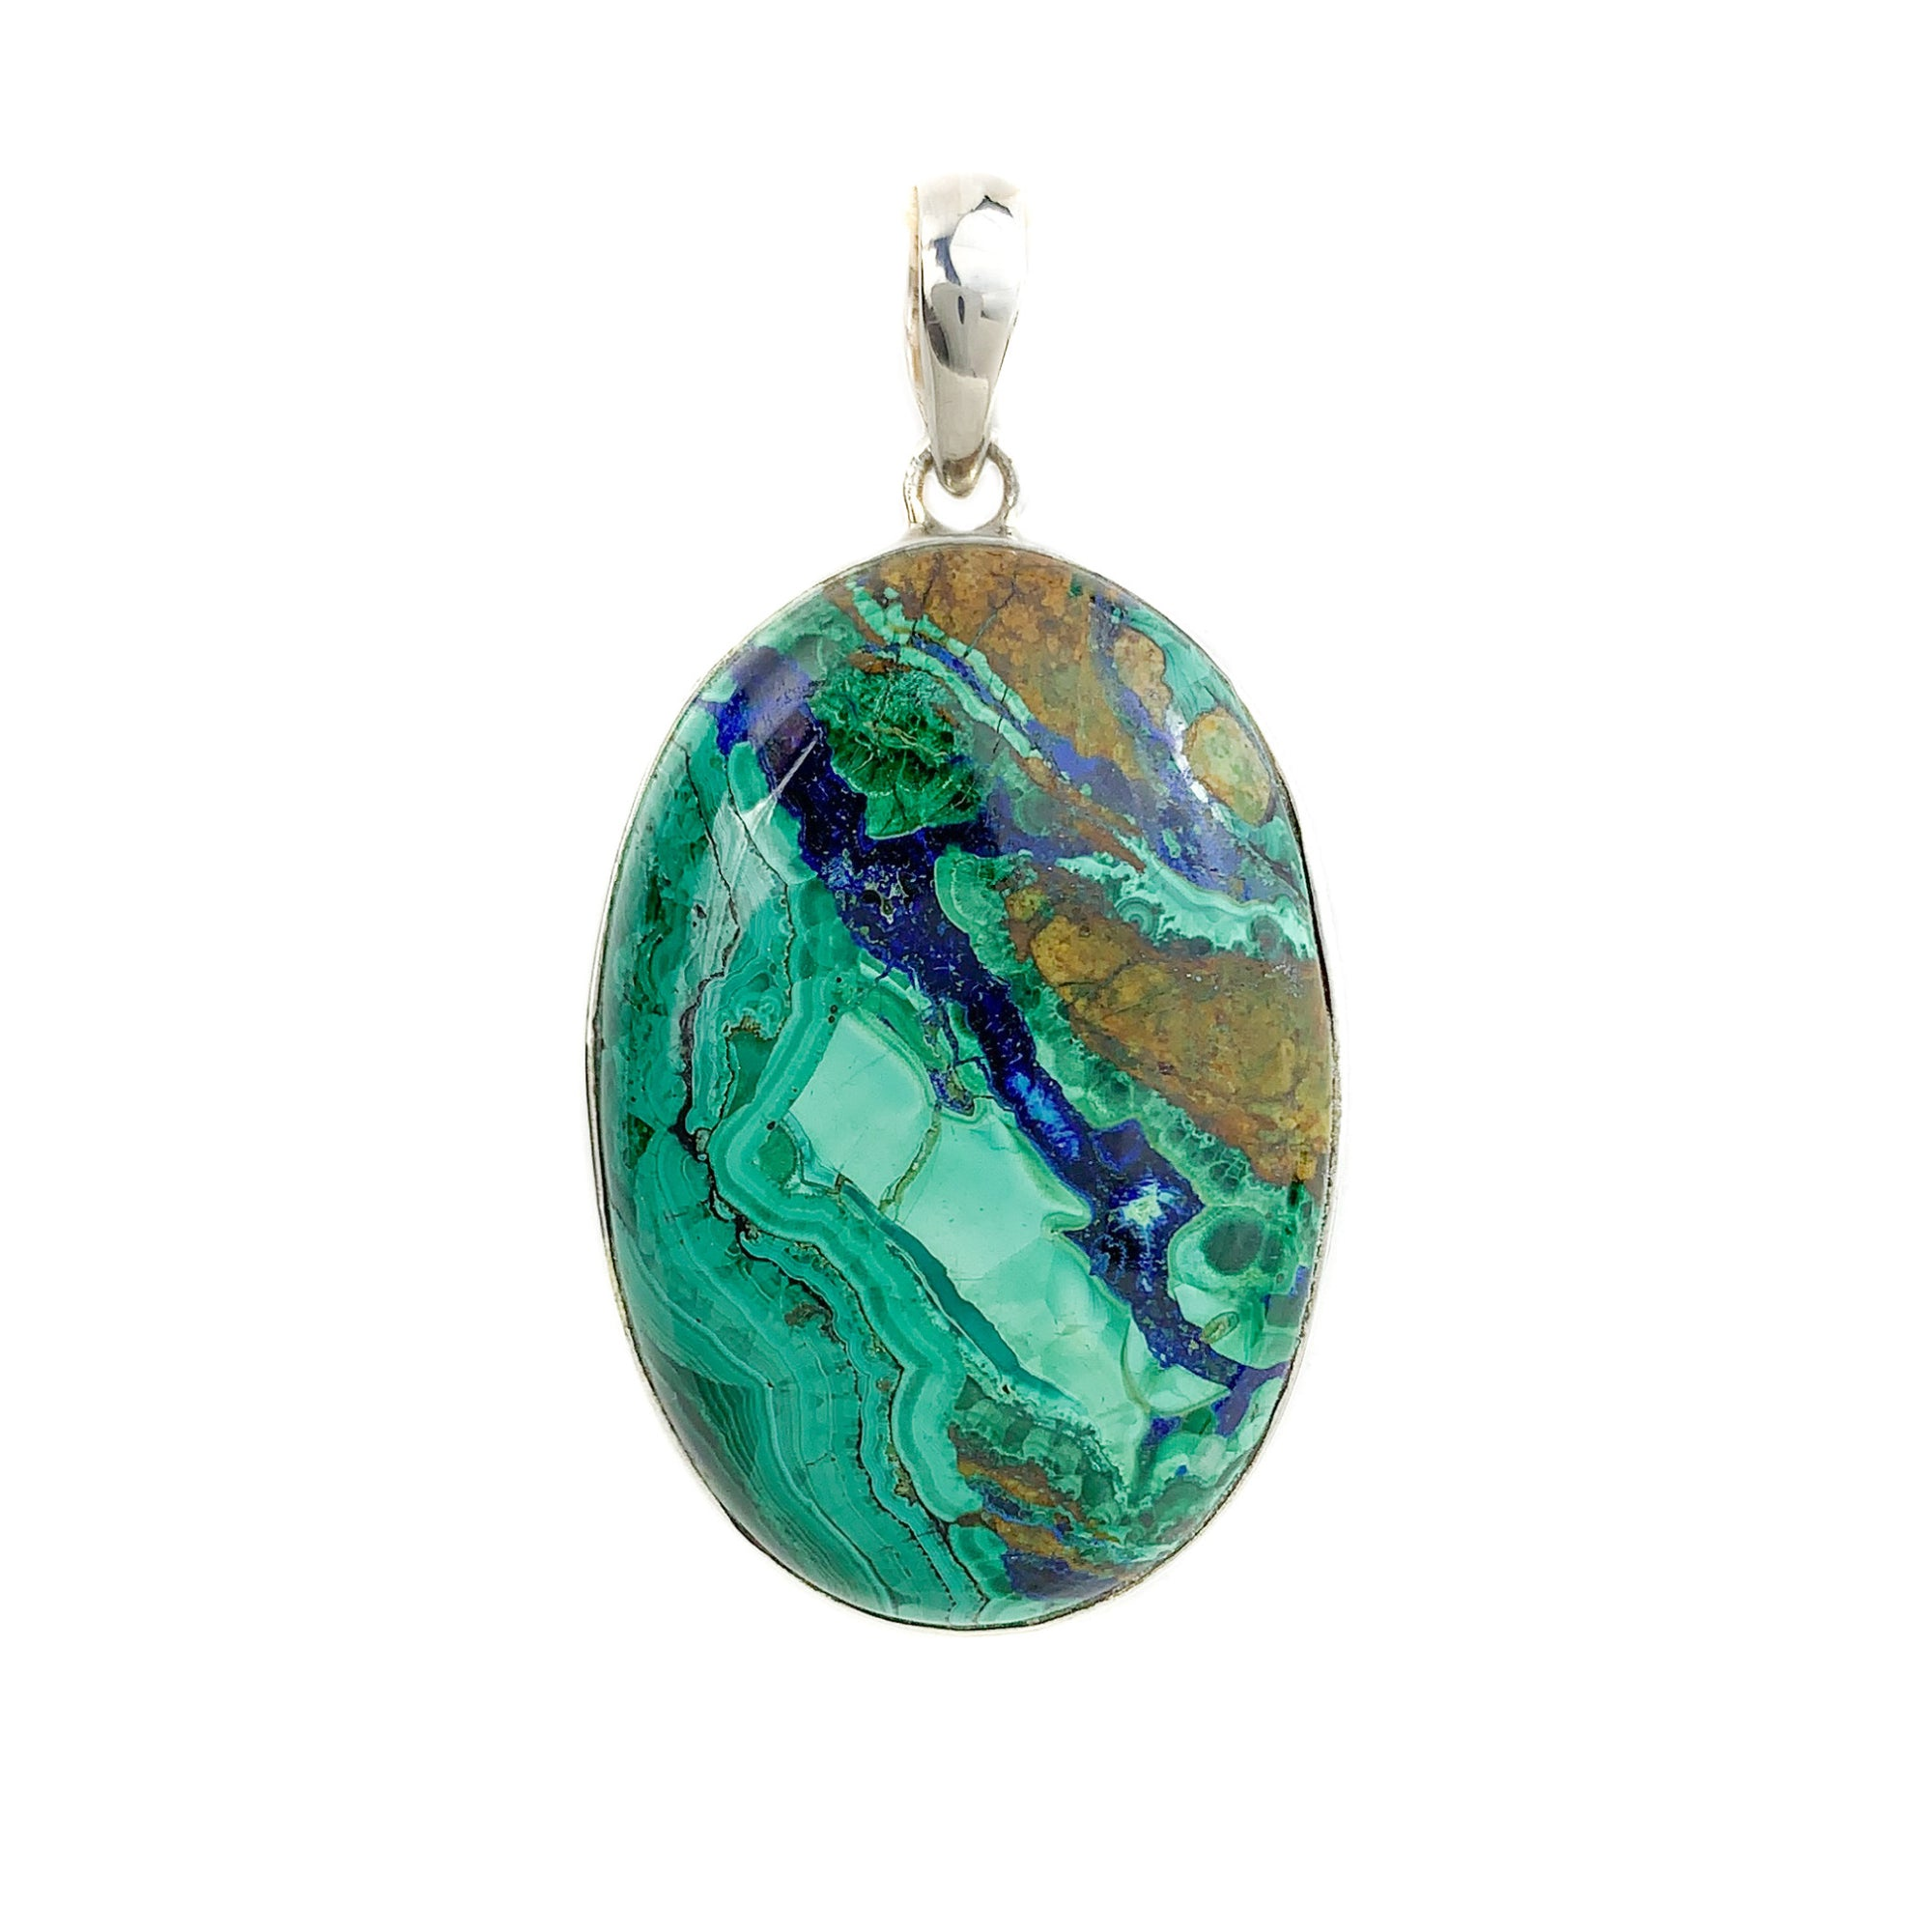 Azurite and Malachite Stone Necklace Set in Sterling Silver